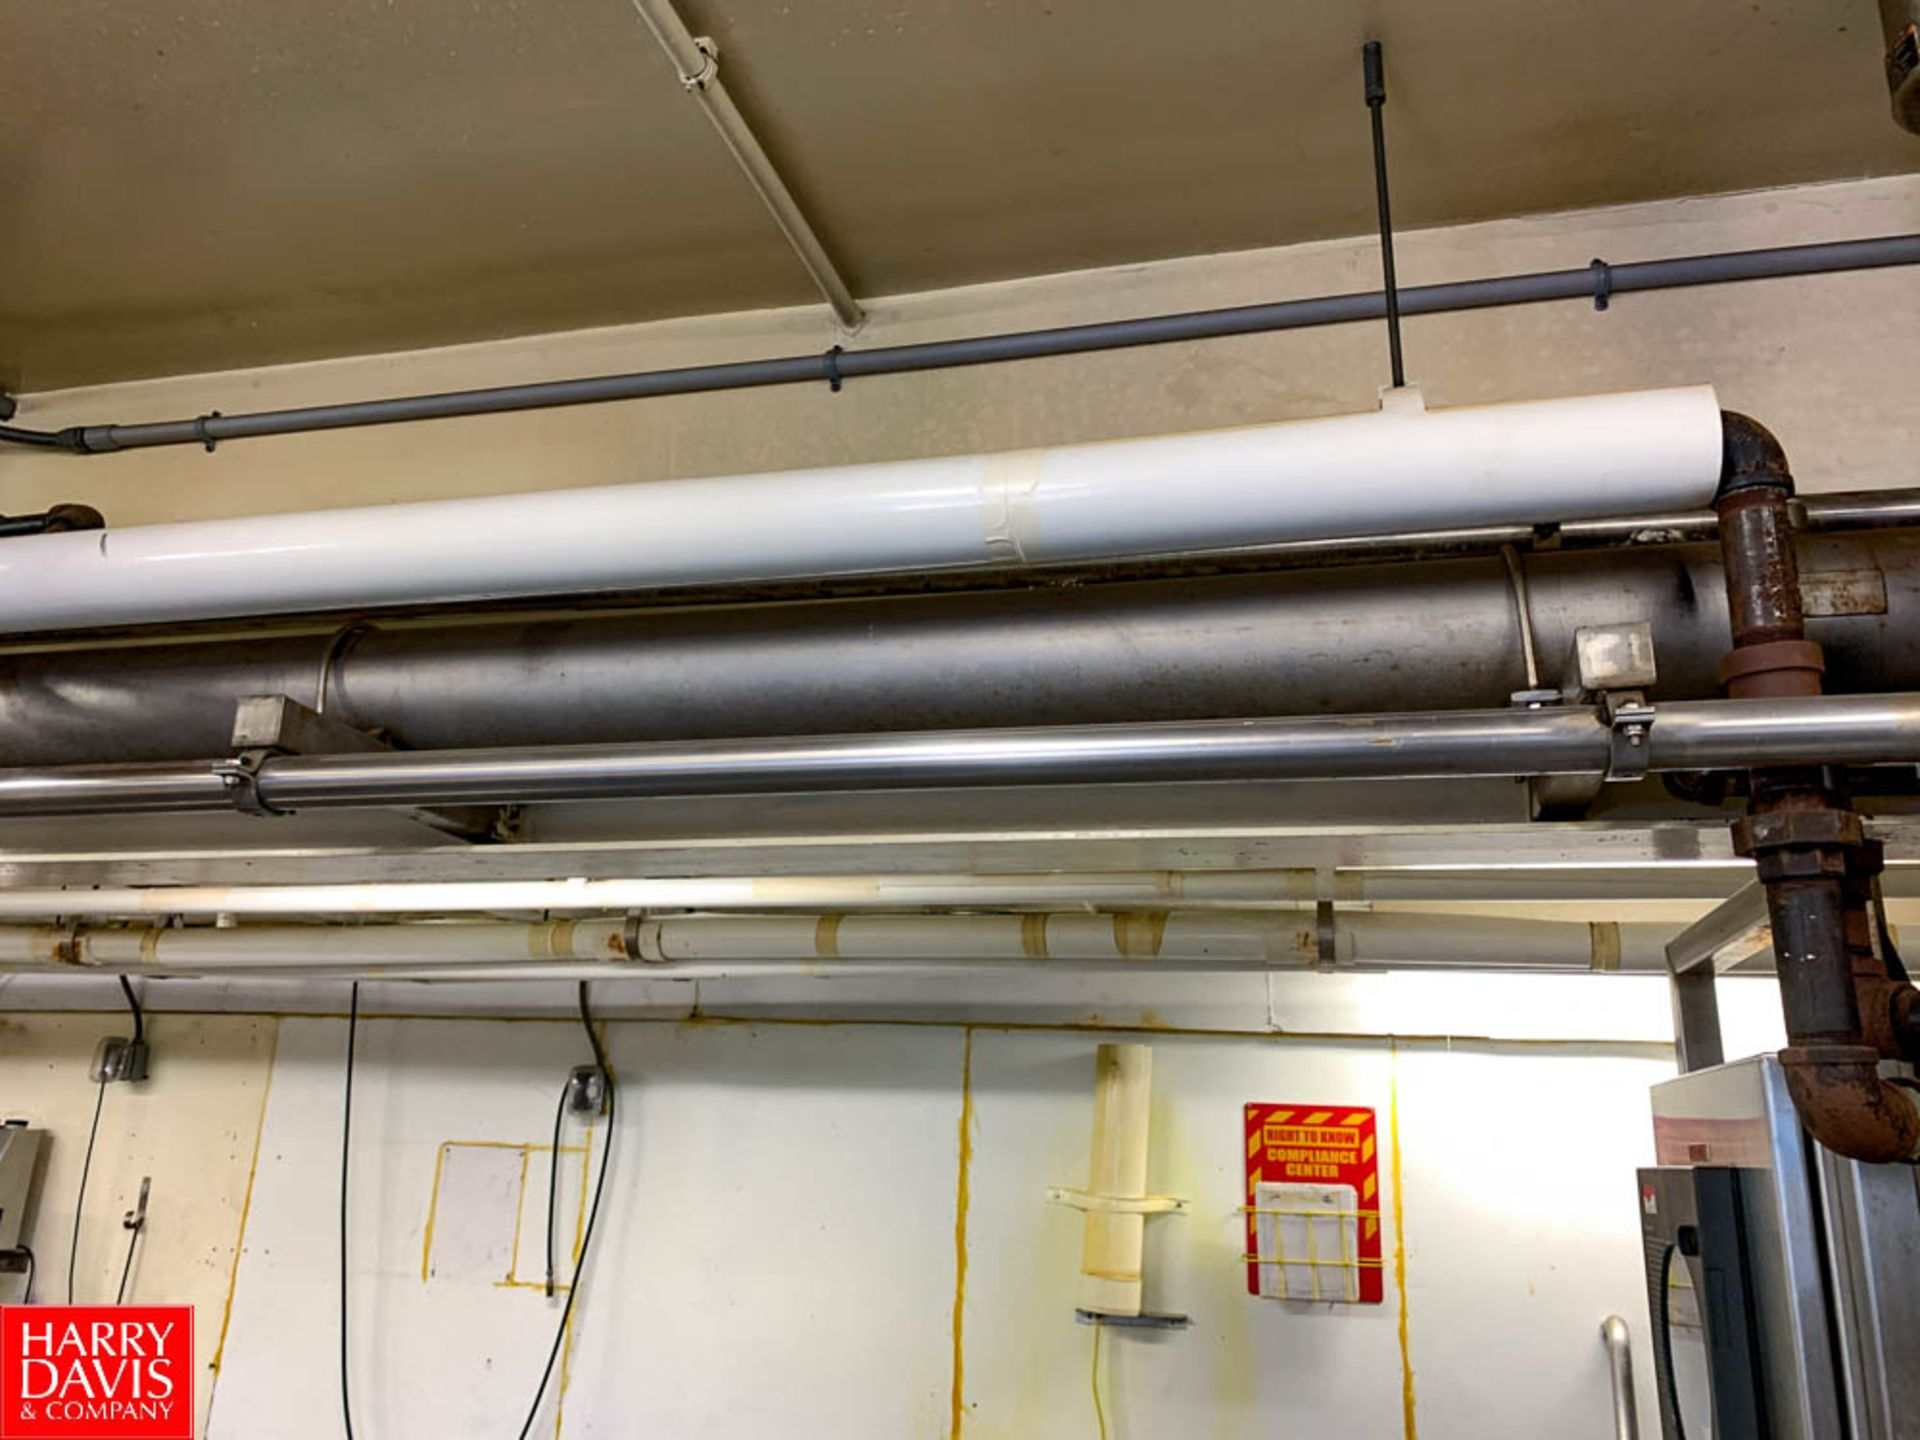 4-Tank S/S CIP System Including: (3) 300 Gallon S/S Tanks, (1) 80 Gallon S/S Tank, Centrifugal - Image 4 of 6